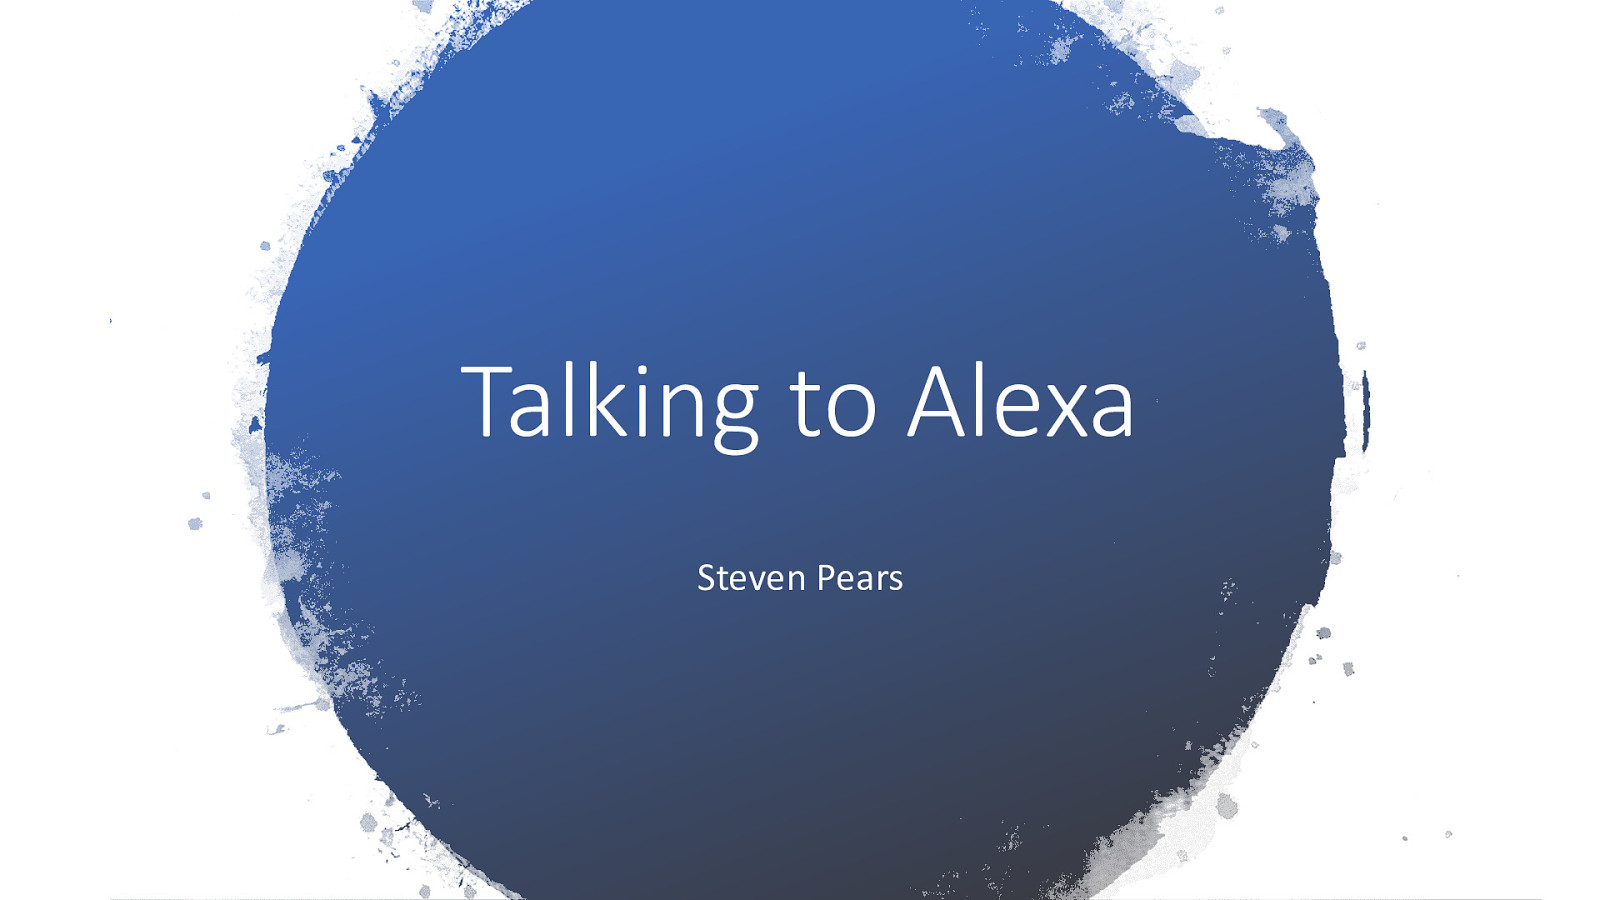 Talking to Alexa